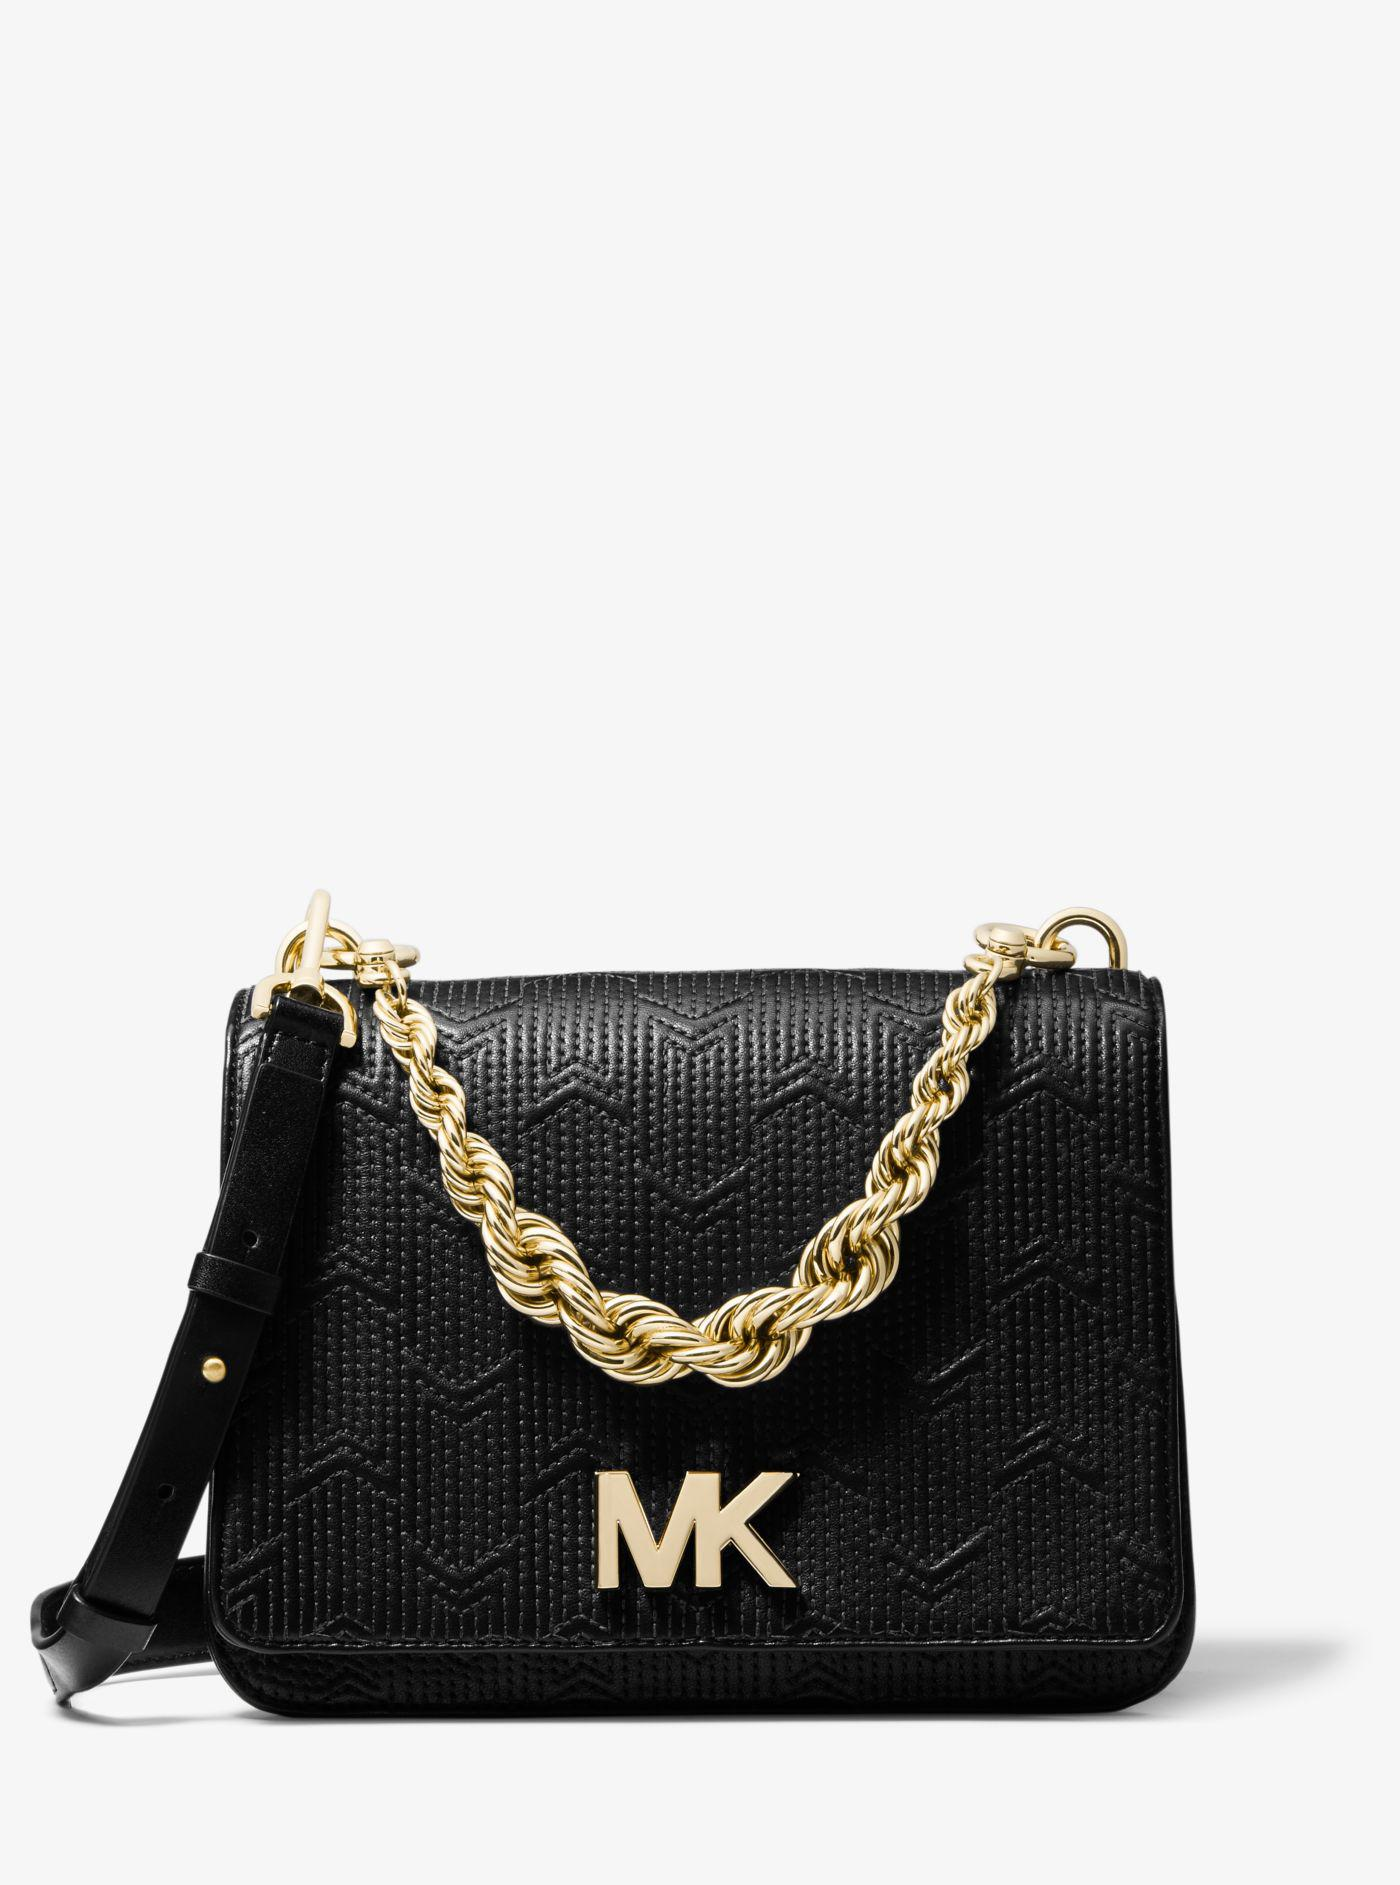 8edc613f49c1 Michael Kors Mott Large Deco Quilted Leather Crossbody in Black - Lyst